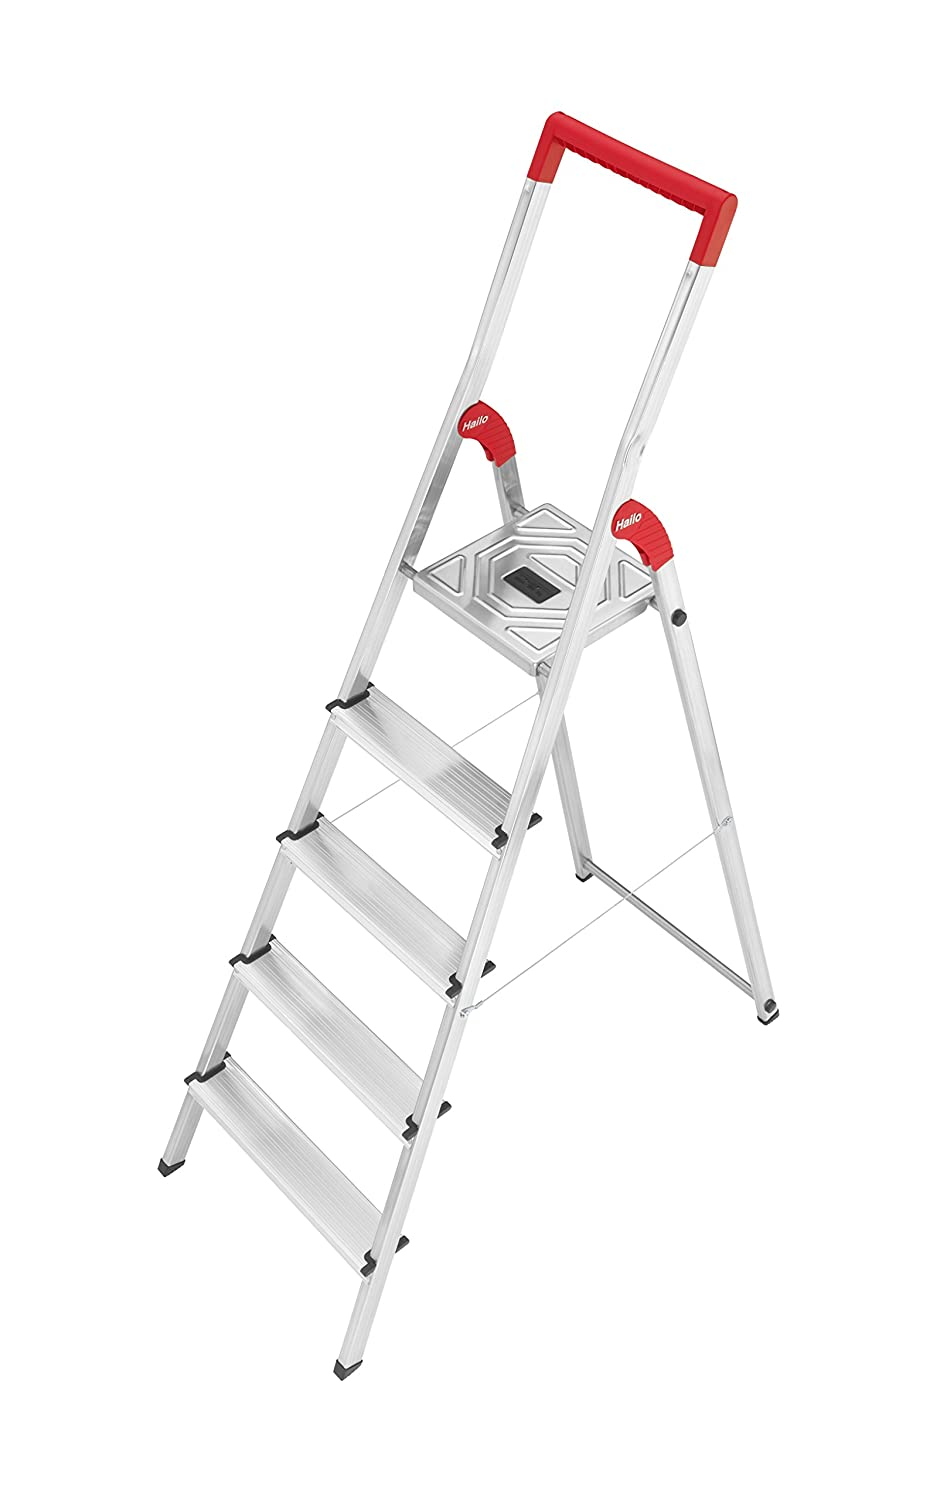 Hailo 8150-507 L50 safety ladder, 5 steps, safety rail with integrated bucket hook,  hinge protection, made in Germany 8150507